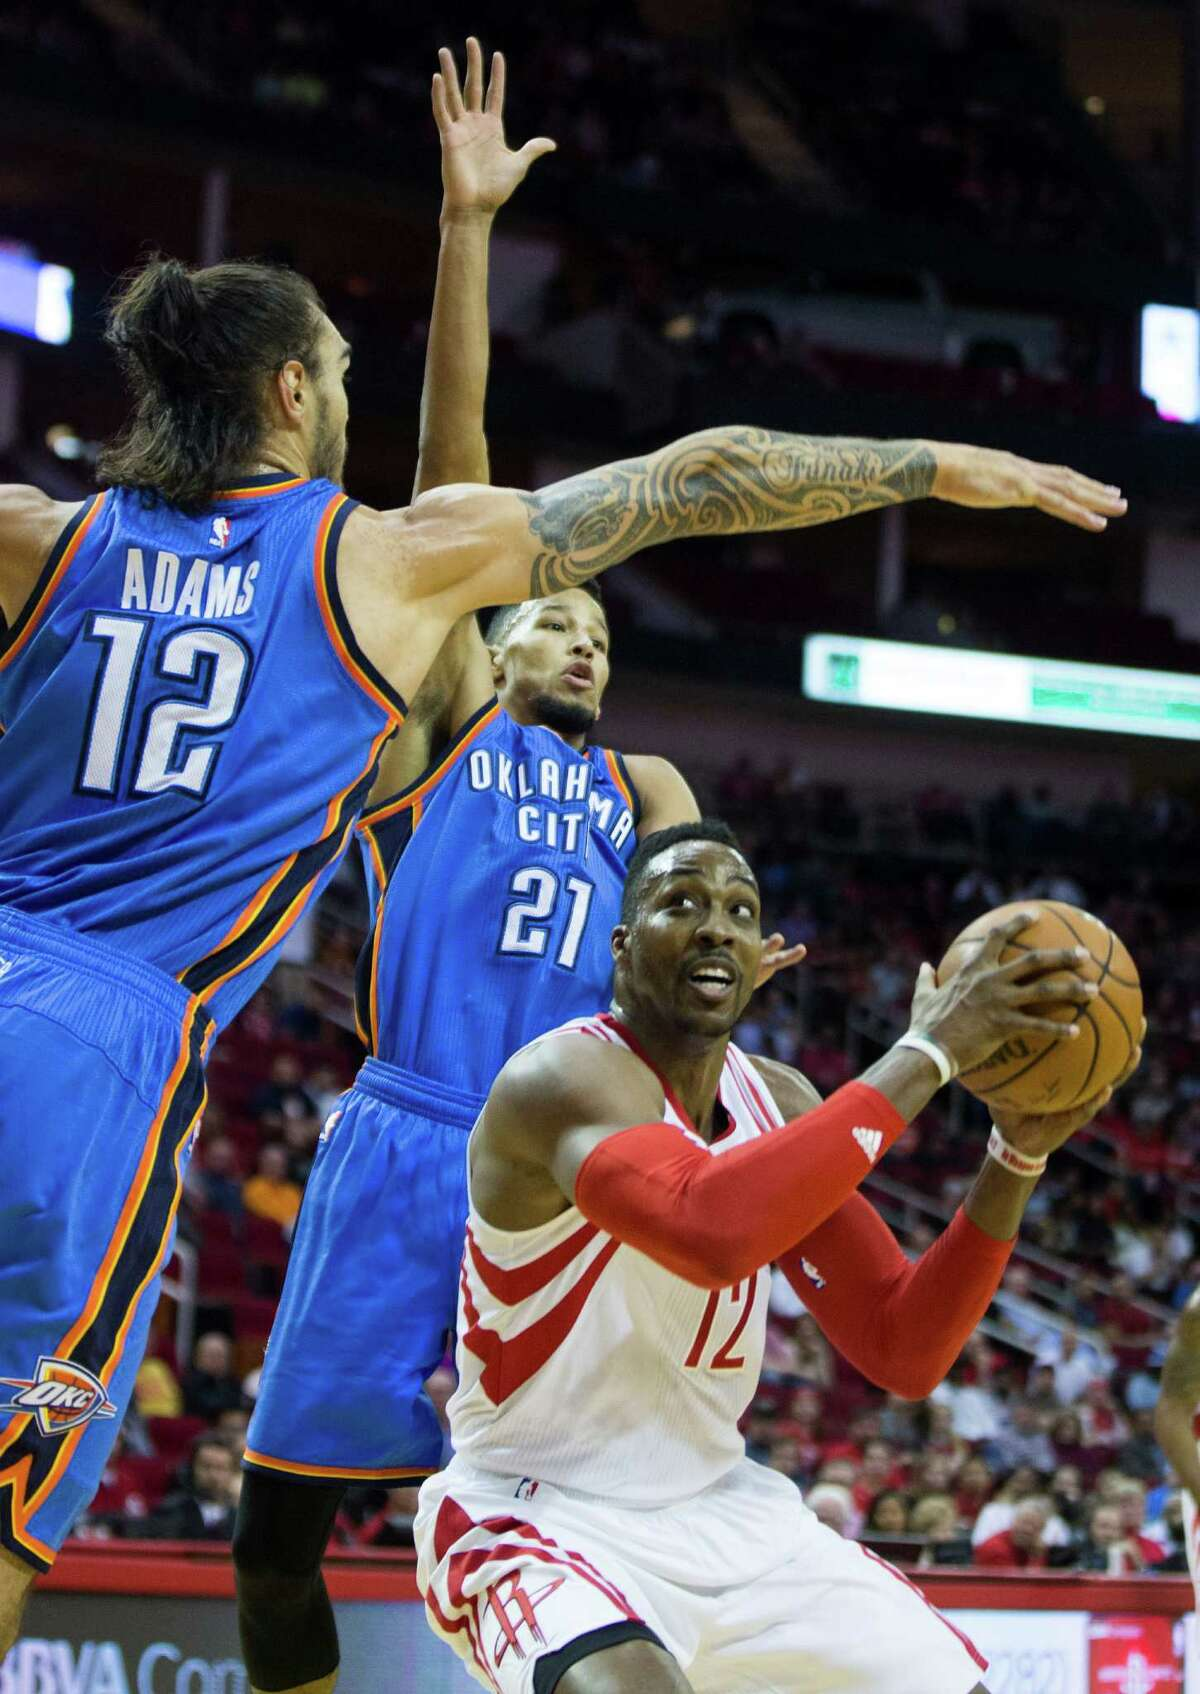 Oklahoma City Thunder center Steven Adams (12) and guard Andre Roberson (21) defend a shot by Houston Rockets center Dwight Howard (12) during the first half of an NBA basketball game at Toyota Center Monday, Nov. 2, 2015, in Houston. ( Brett Coomer / Houston Chronicle )